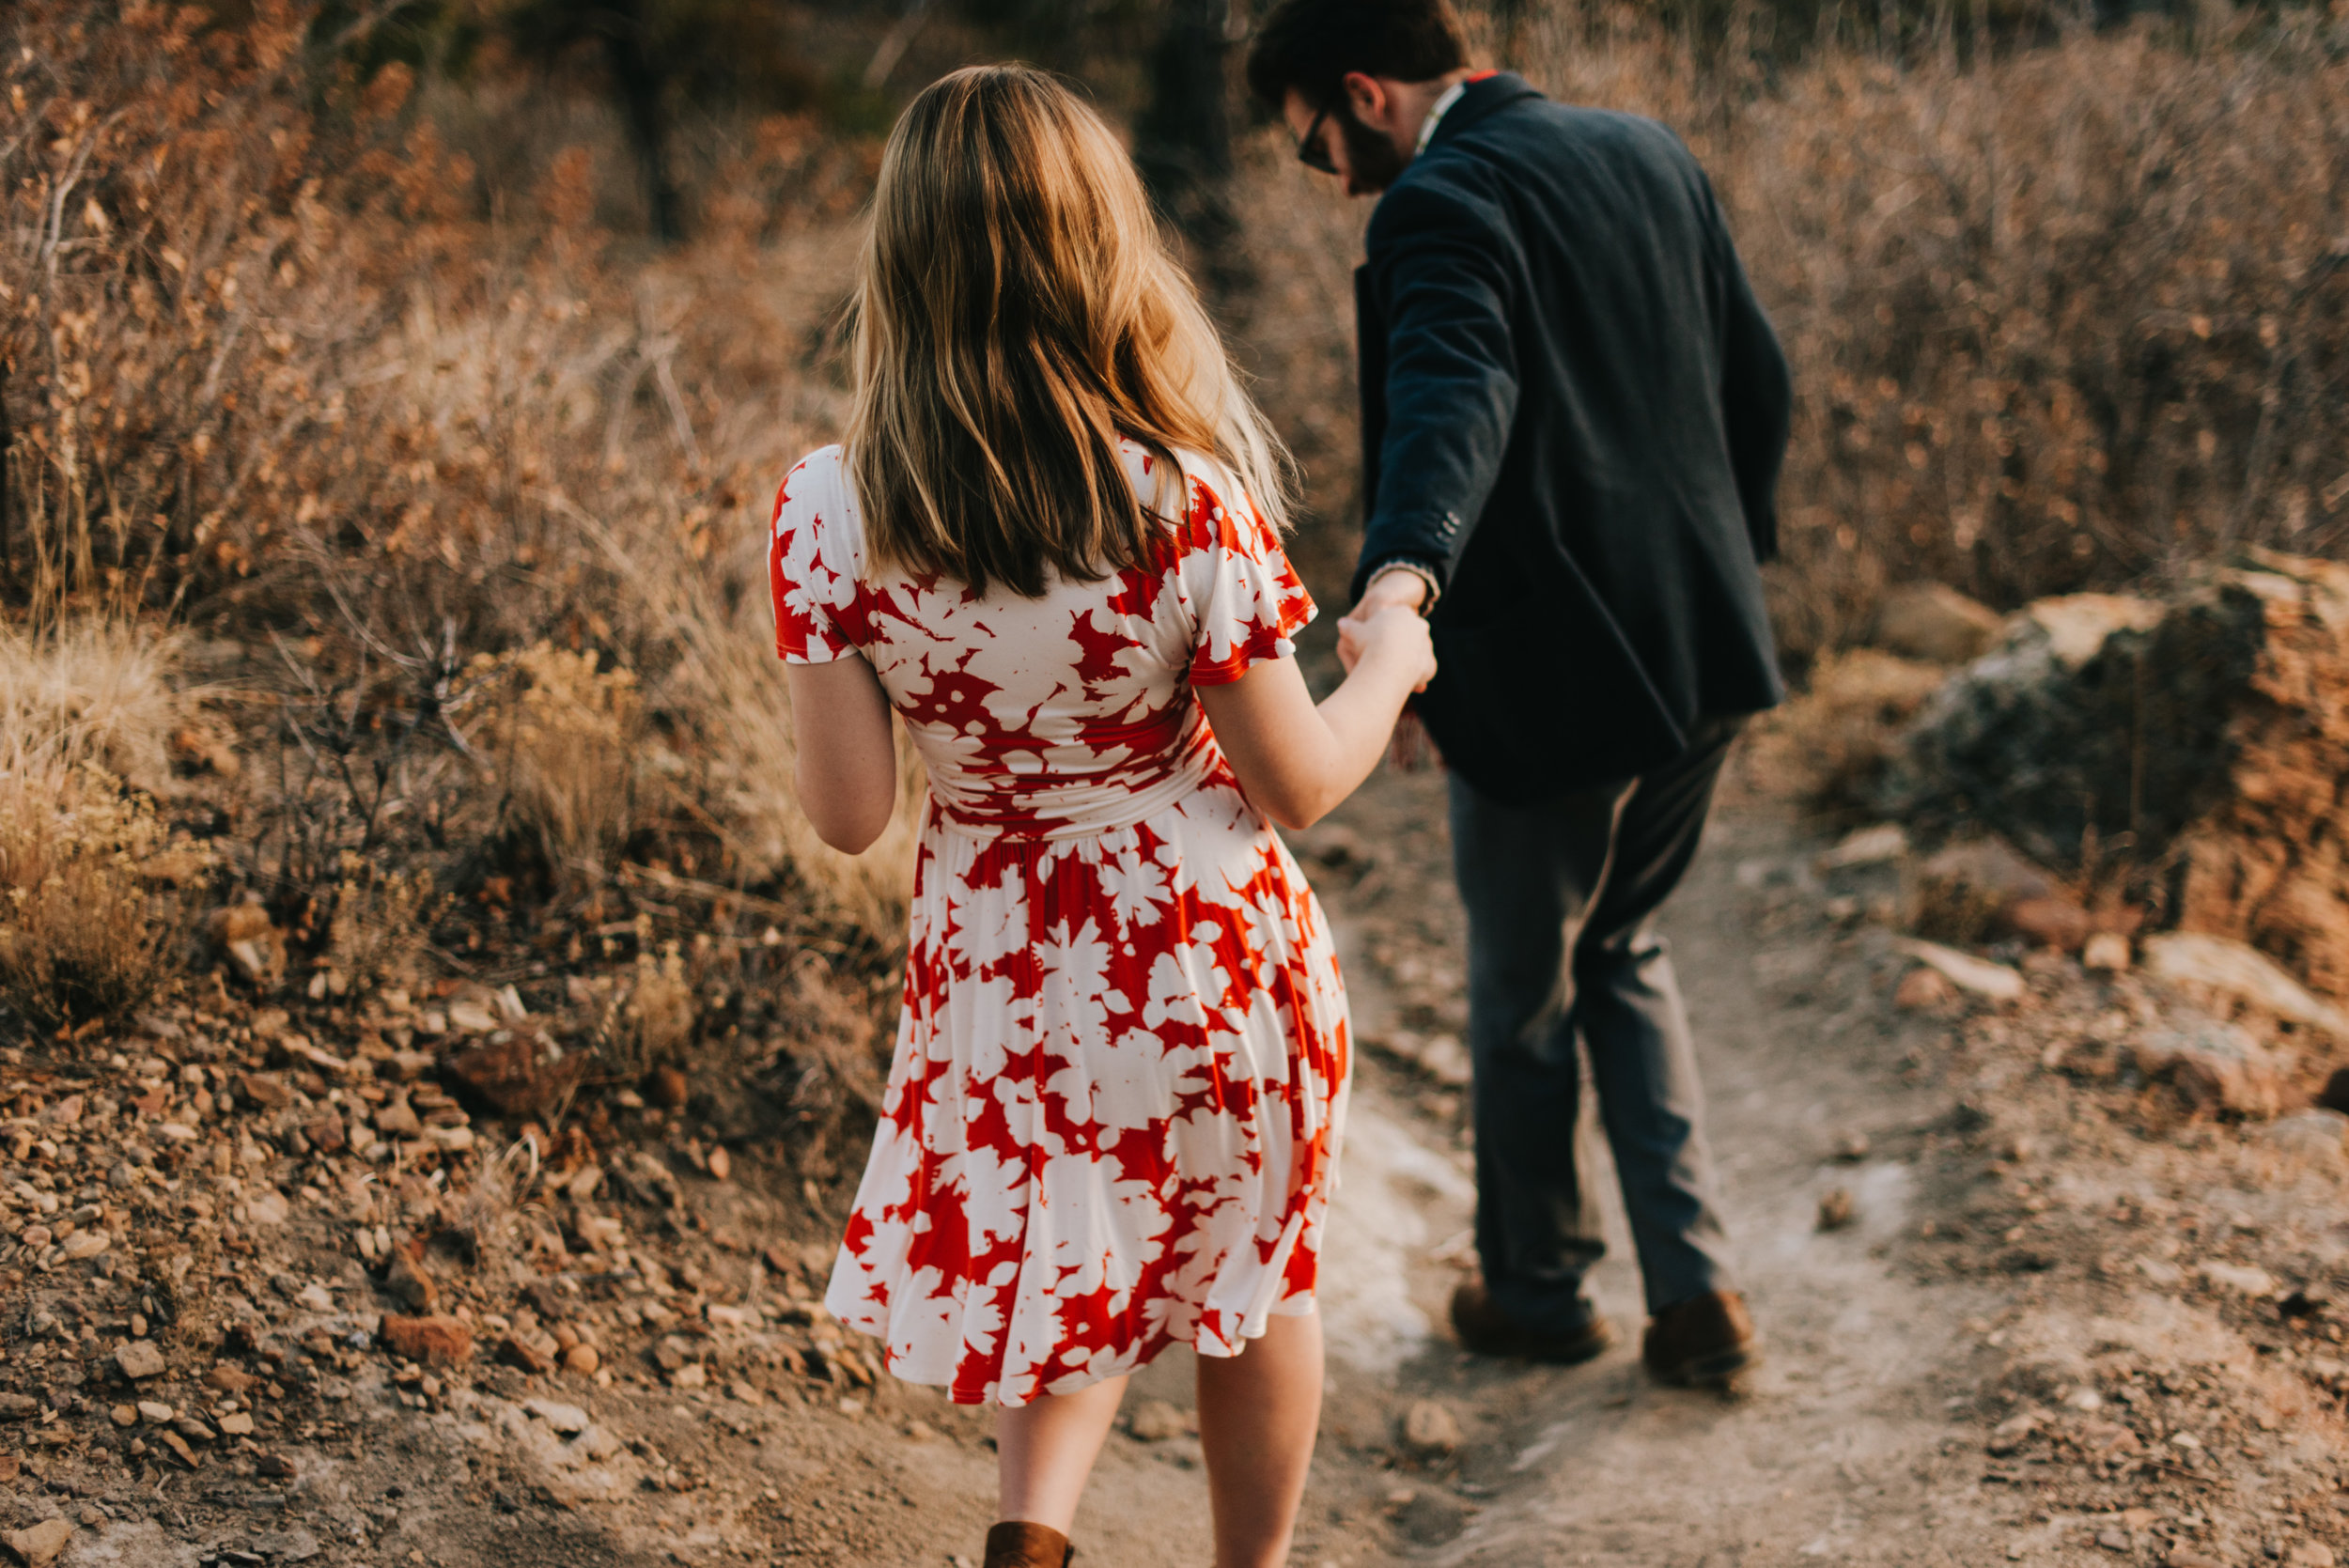 Ted and Rachel walking hand in hand during their engagement session.